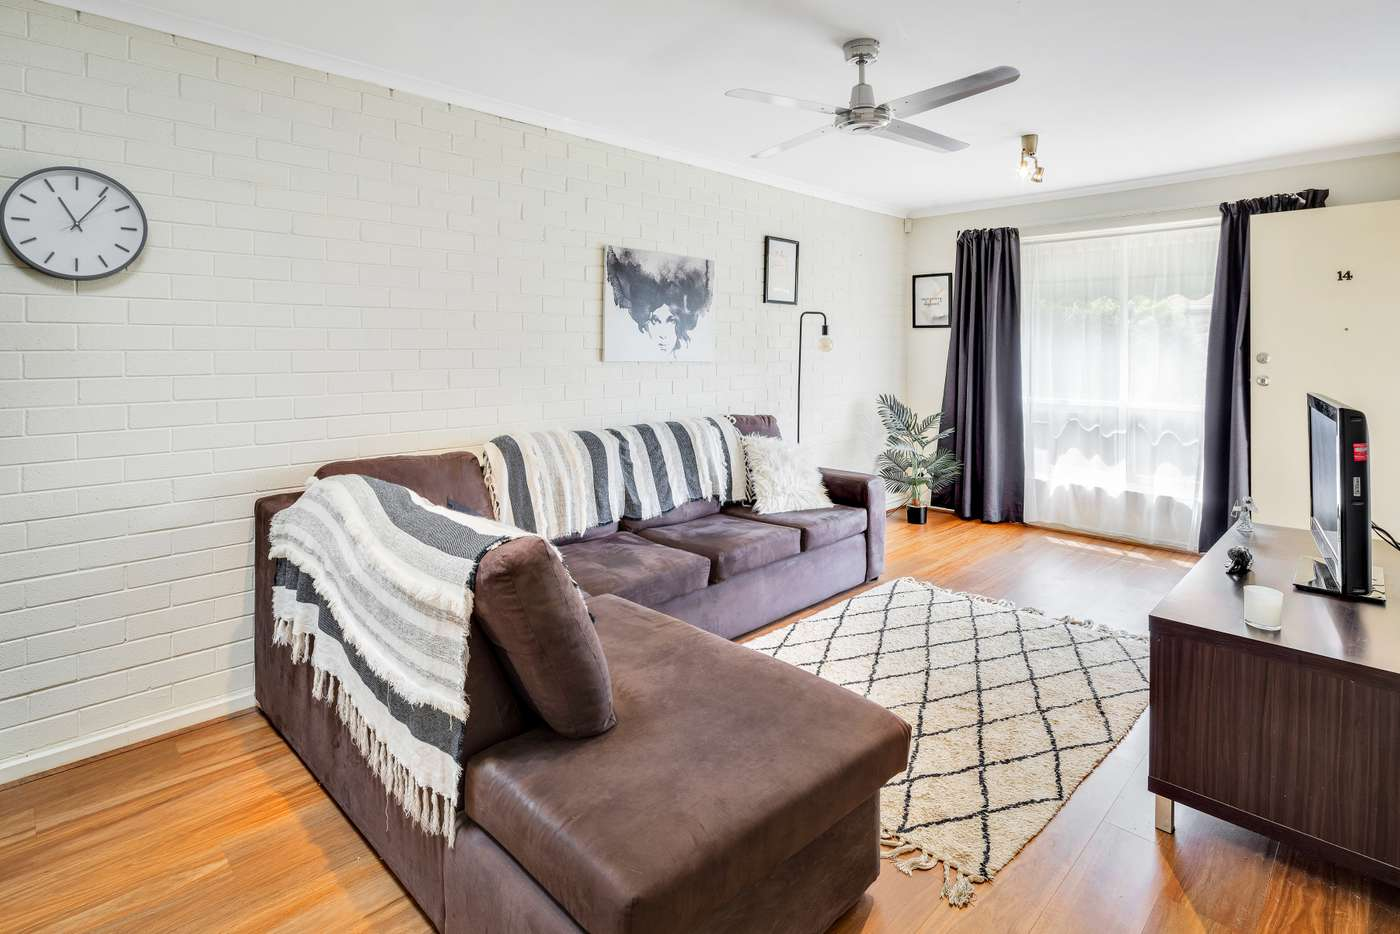 Sixth view of Homely unit listing, 14/19 Hillier Road, Morphett Vale SA 5162